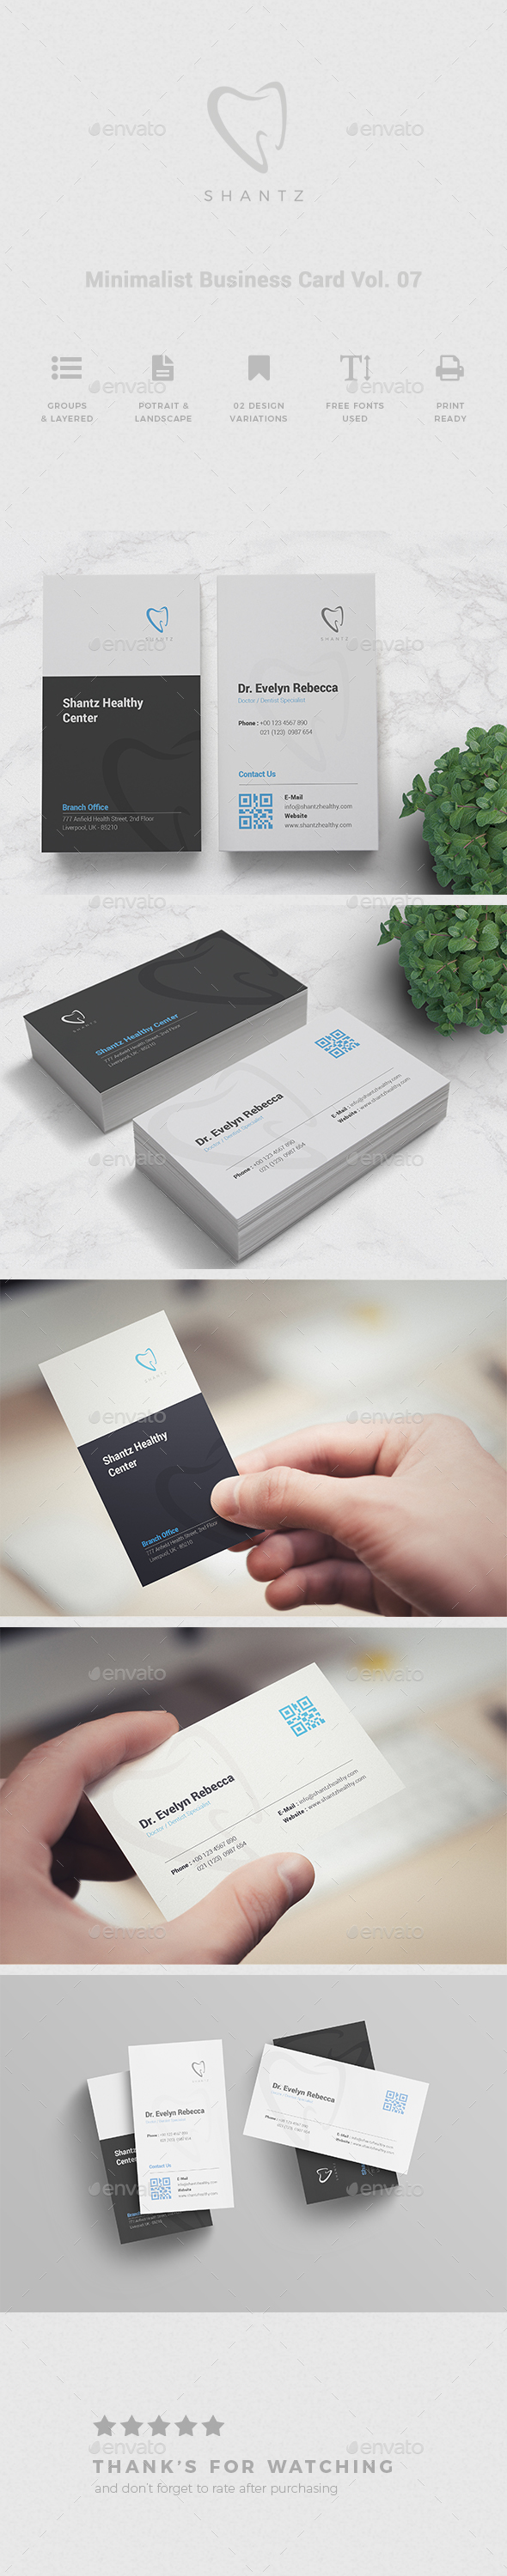 Minimalist Business Card Vol. 07 - Business Cards Print Templates